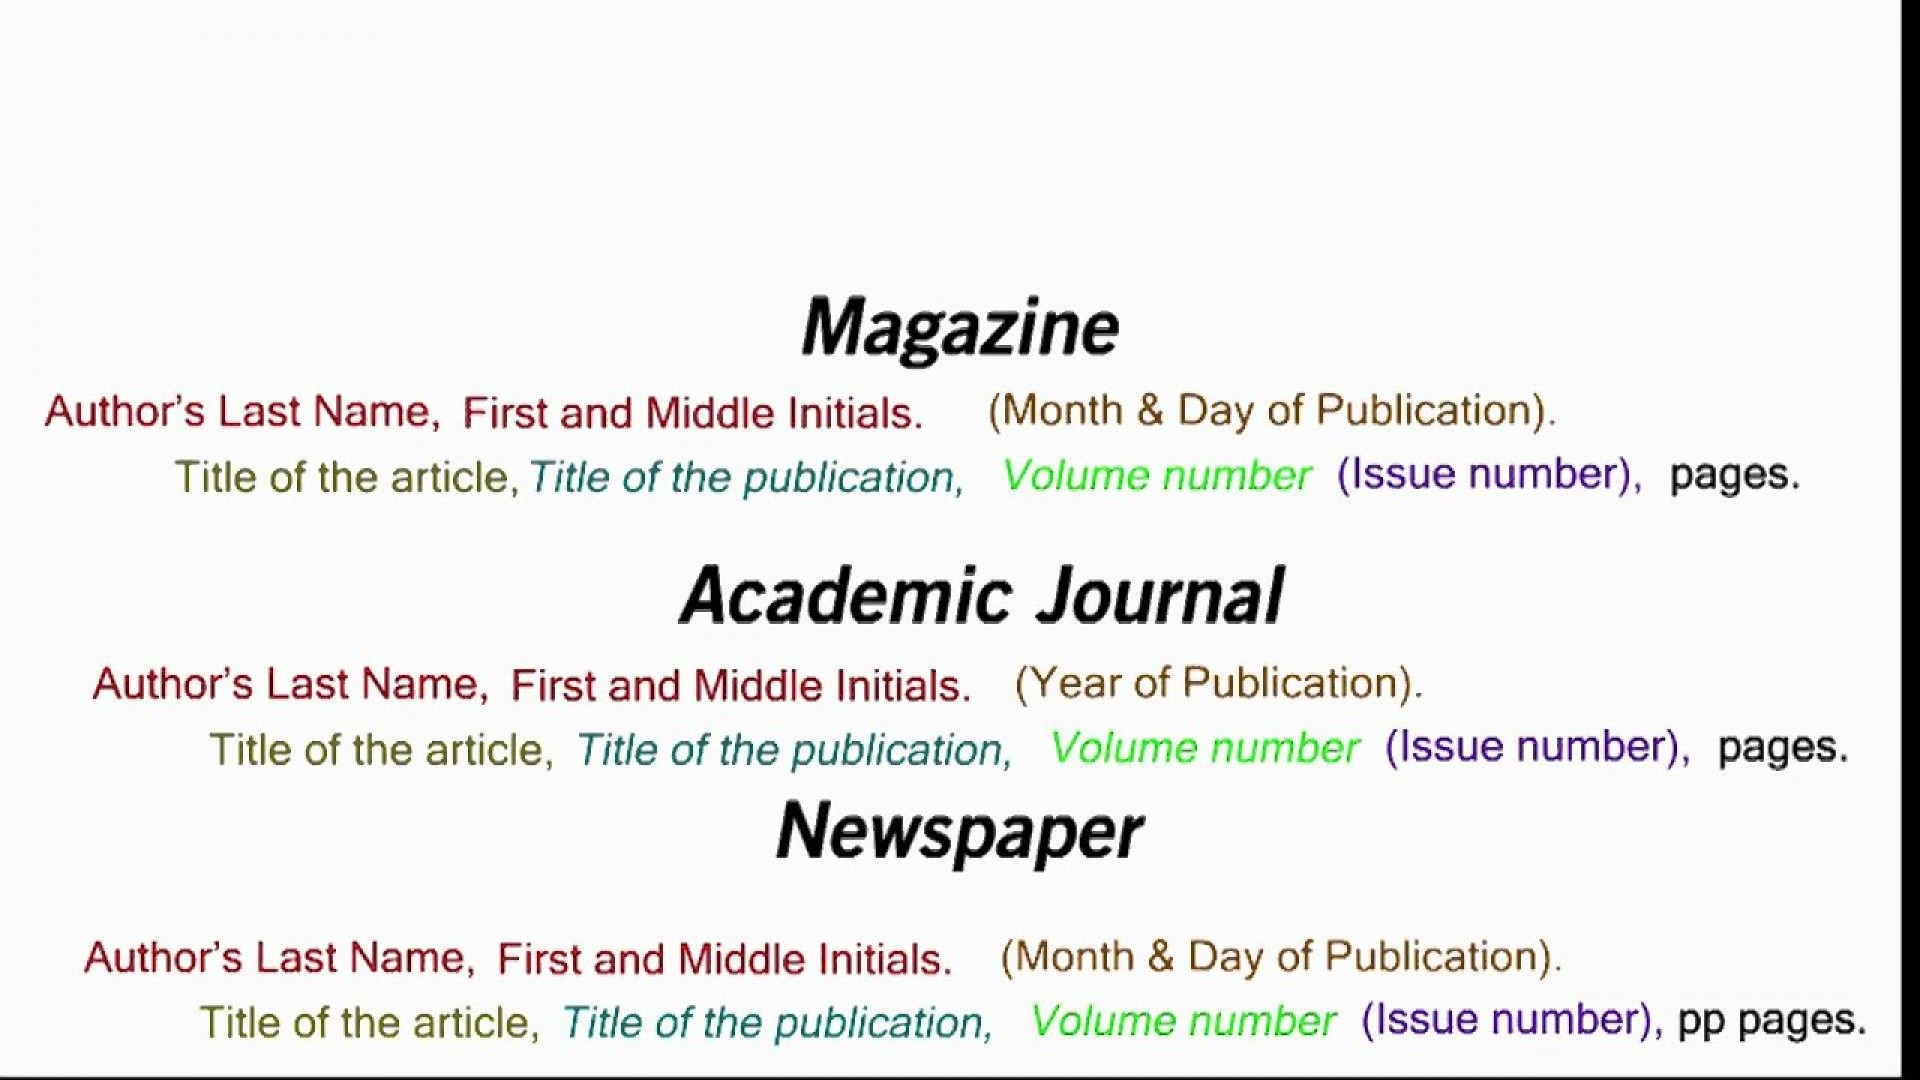 004 Maxresdefault How To Cite Articles In Essay Singular A Quote From An Internet Article Scholarly Text Mla Journal Paper Apa 1920